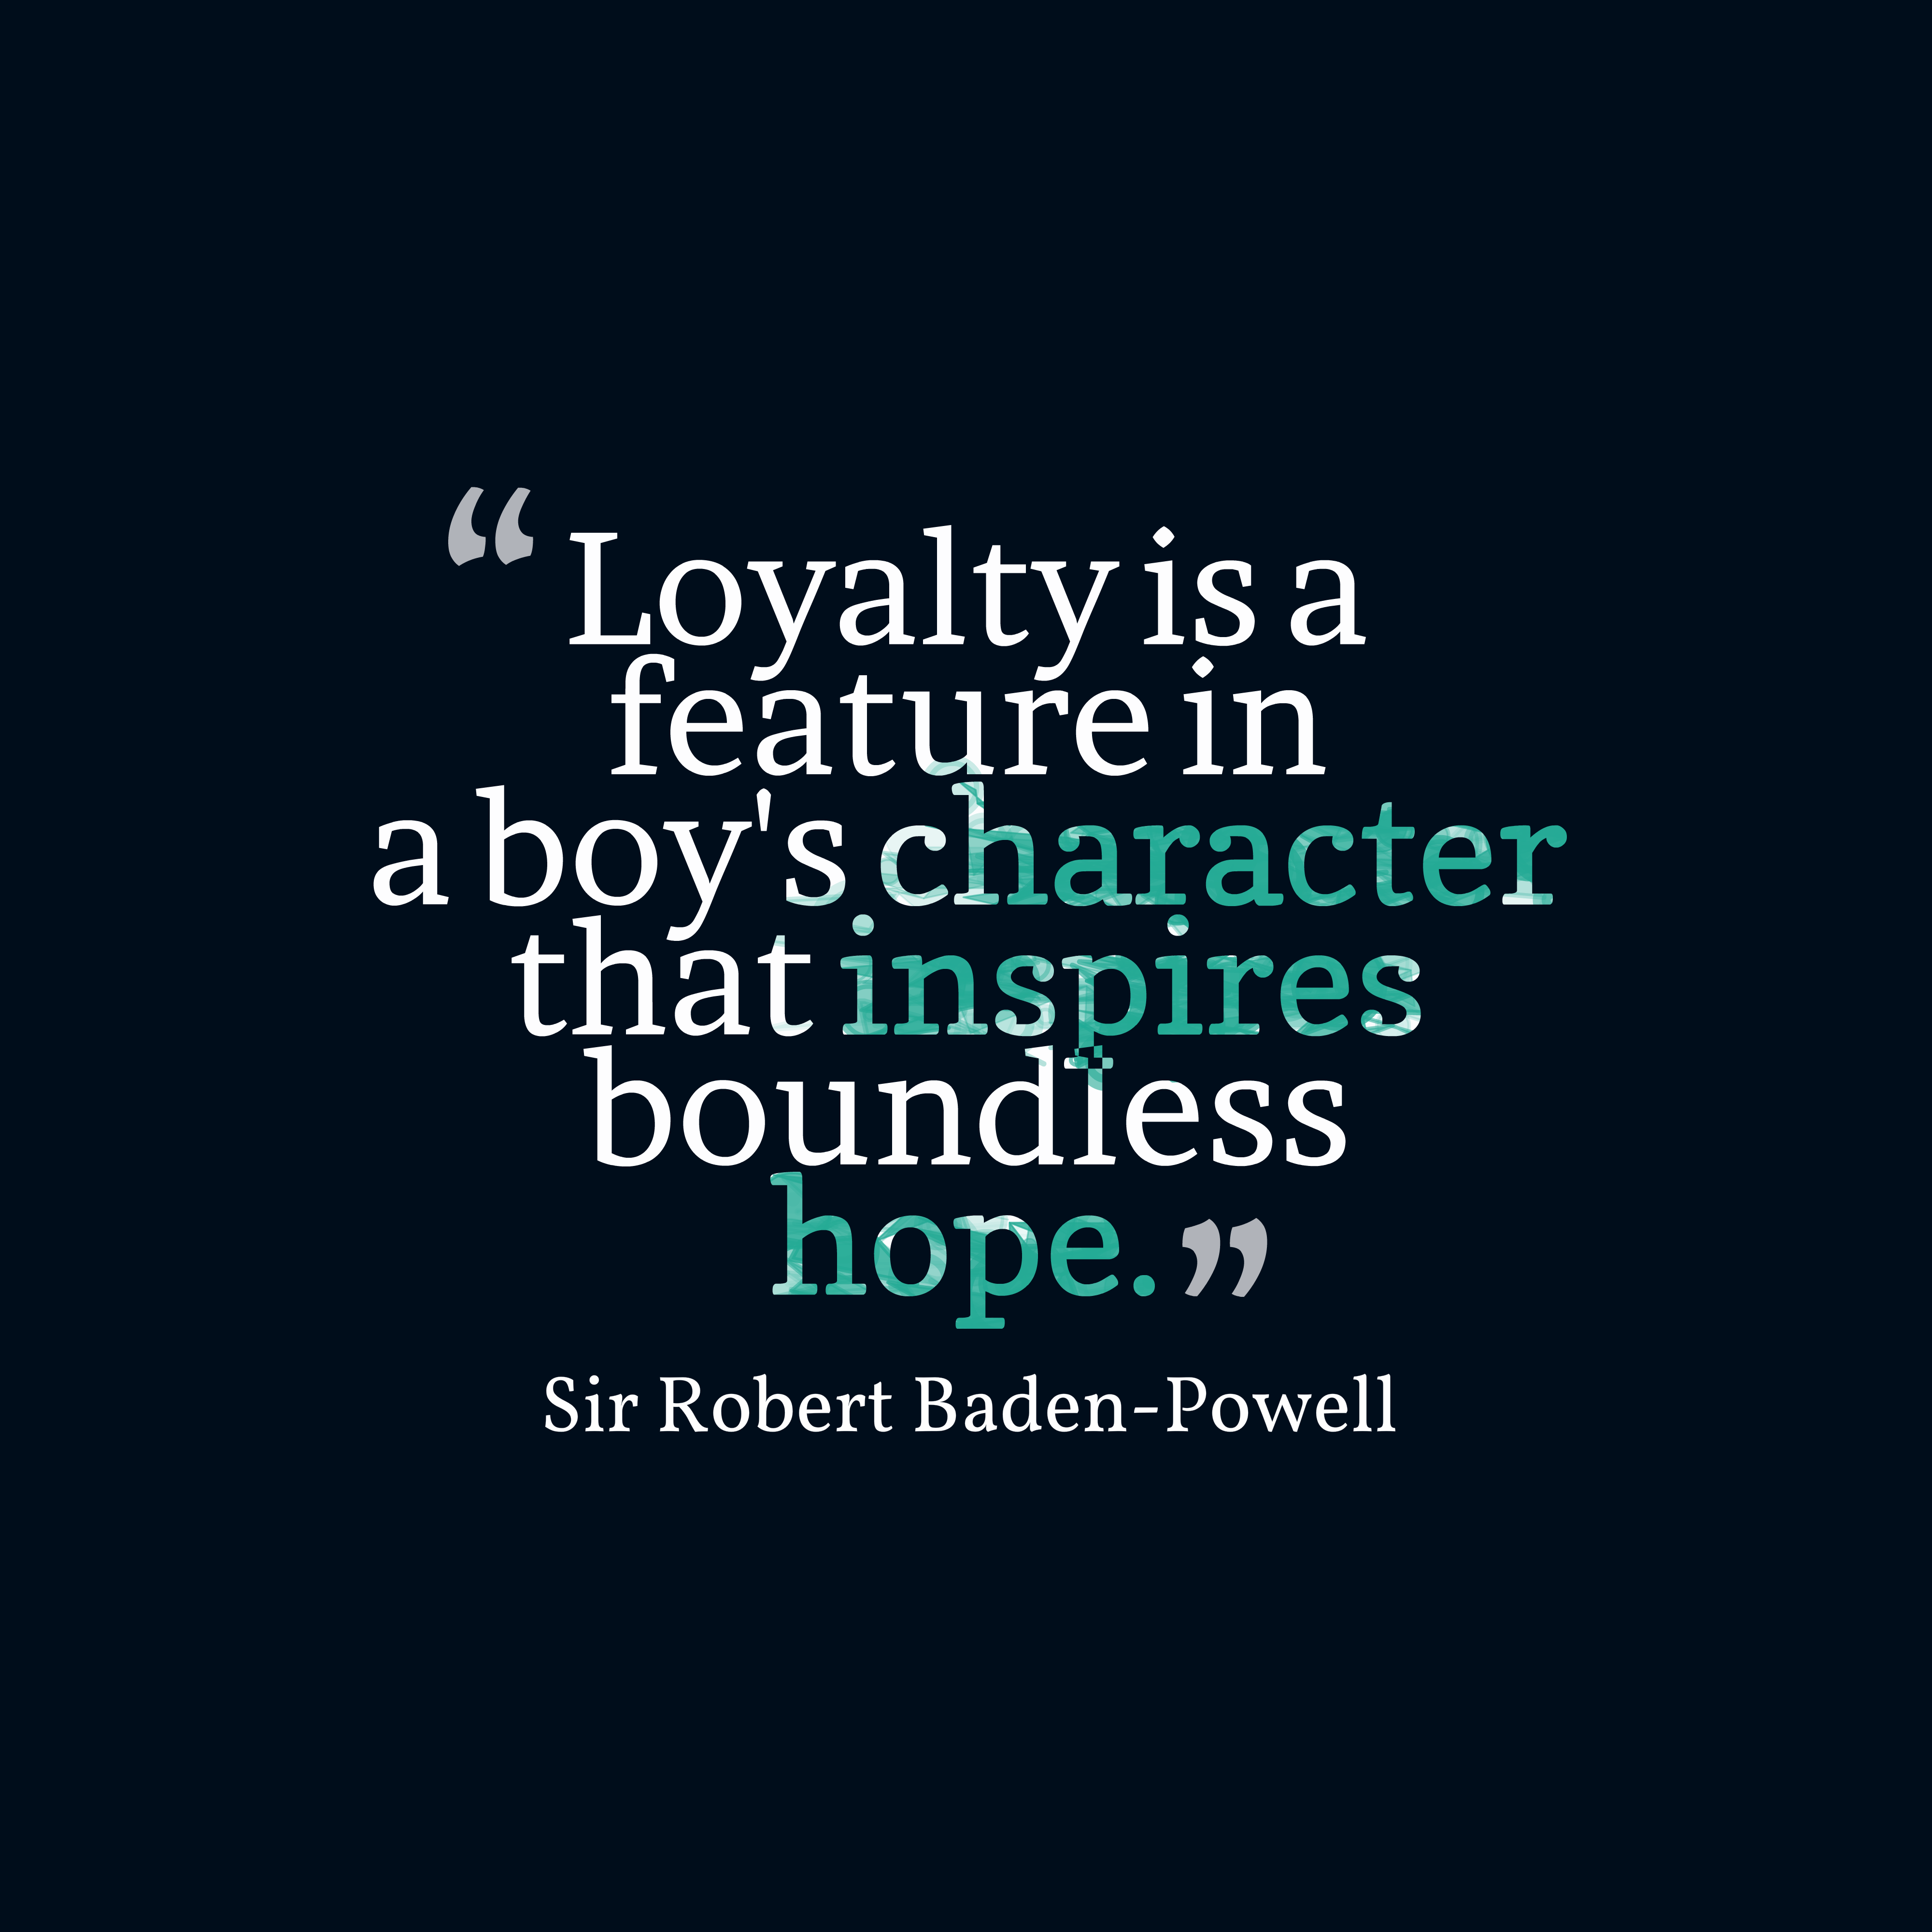 Designs quotes about loyalty quotes about loyalty quotes about loyalty - Designs Quotes About Loyalty Quotes About Loyalty Quotes About Loyalty 3